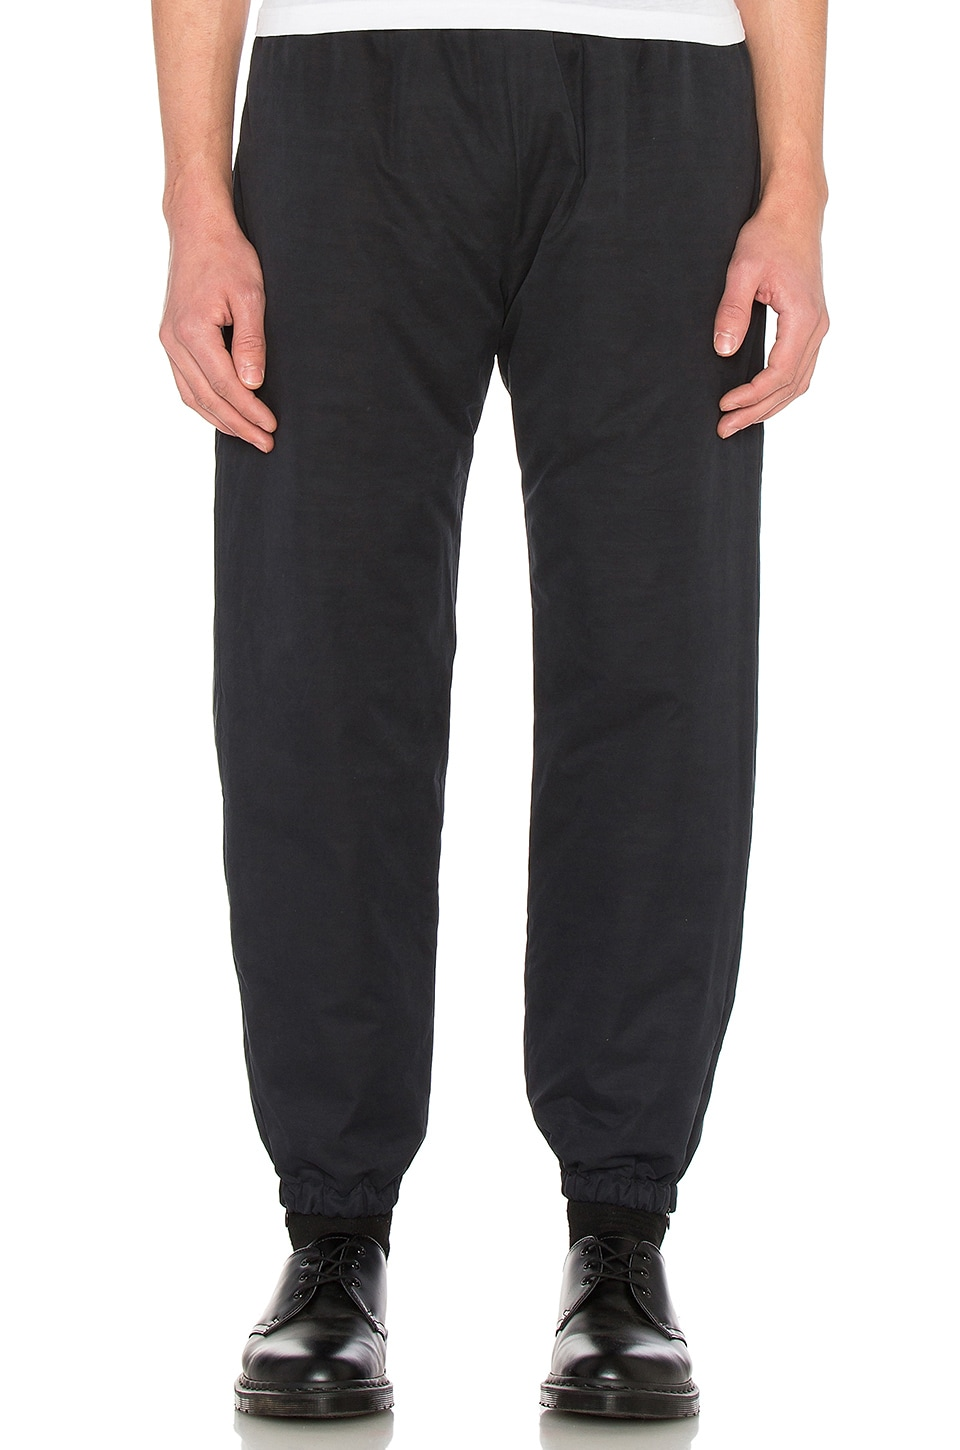 Insulated Pant by Maiden Noir